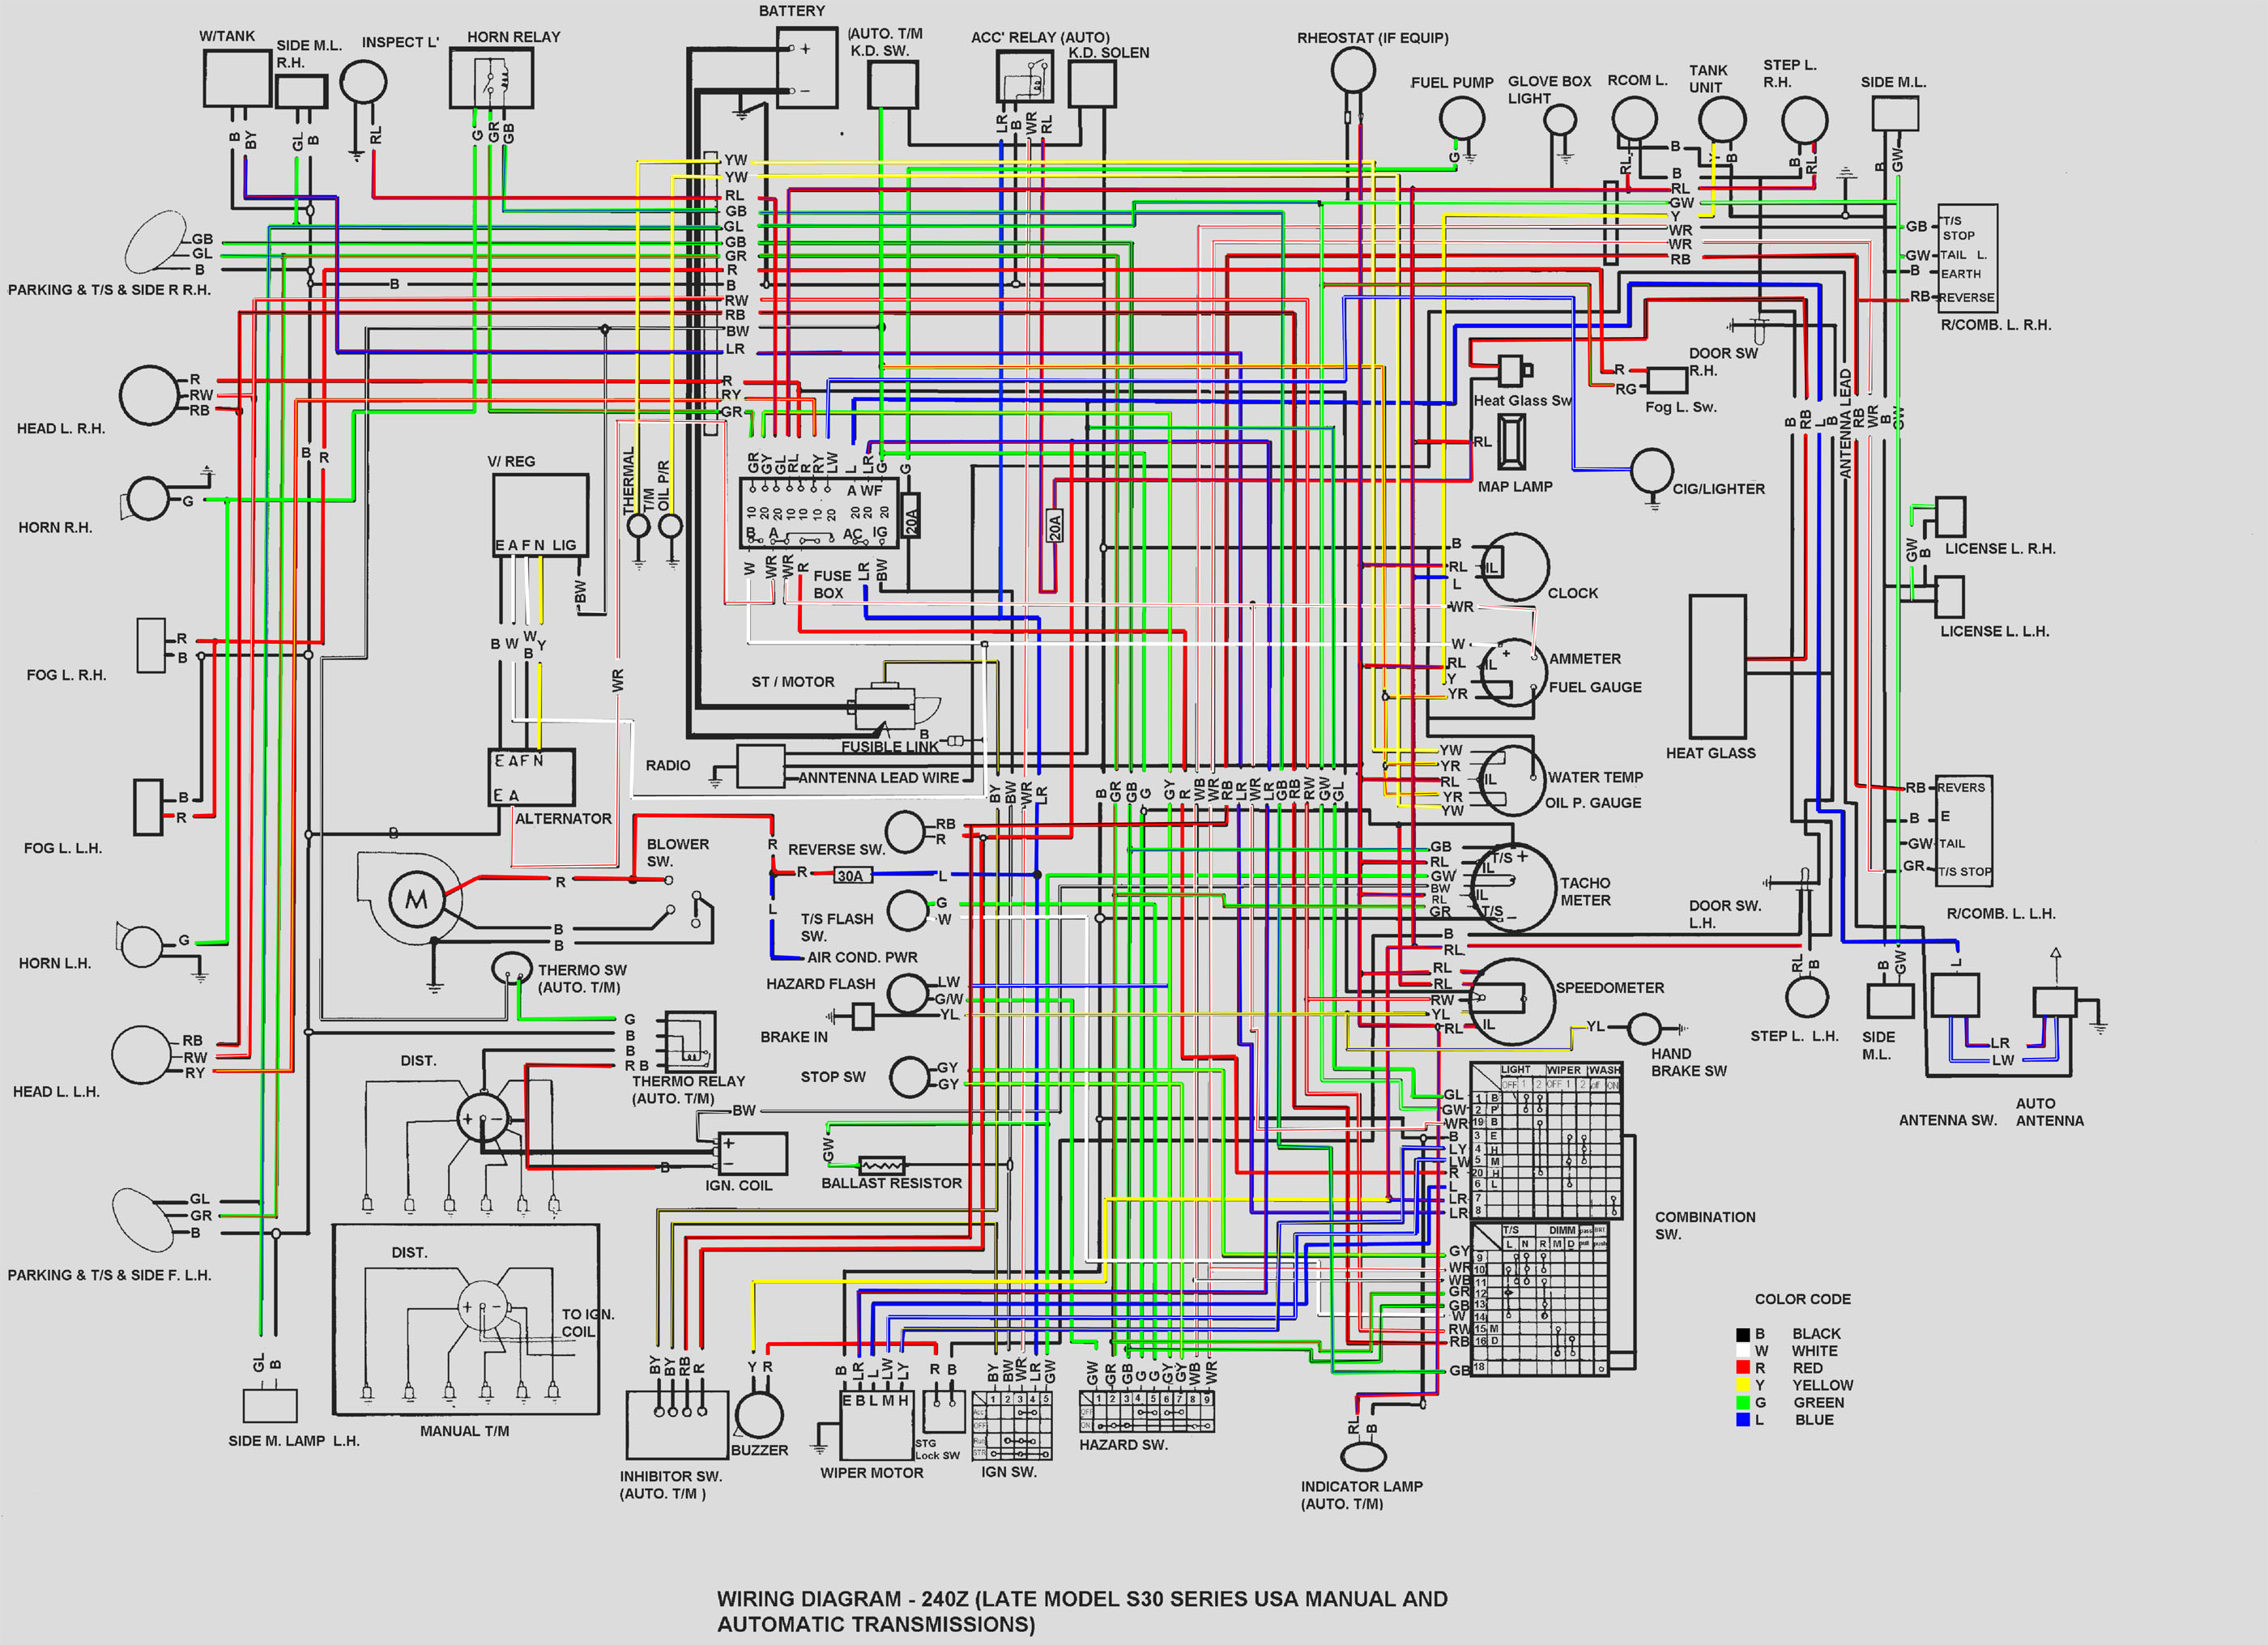 earlywire marvelous 260z wiring diagram ideas best image diagram 8we us  at alyssarenee.co